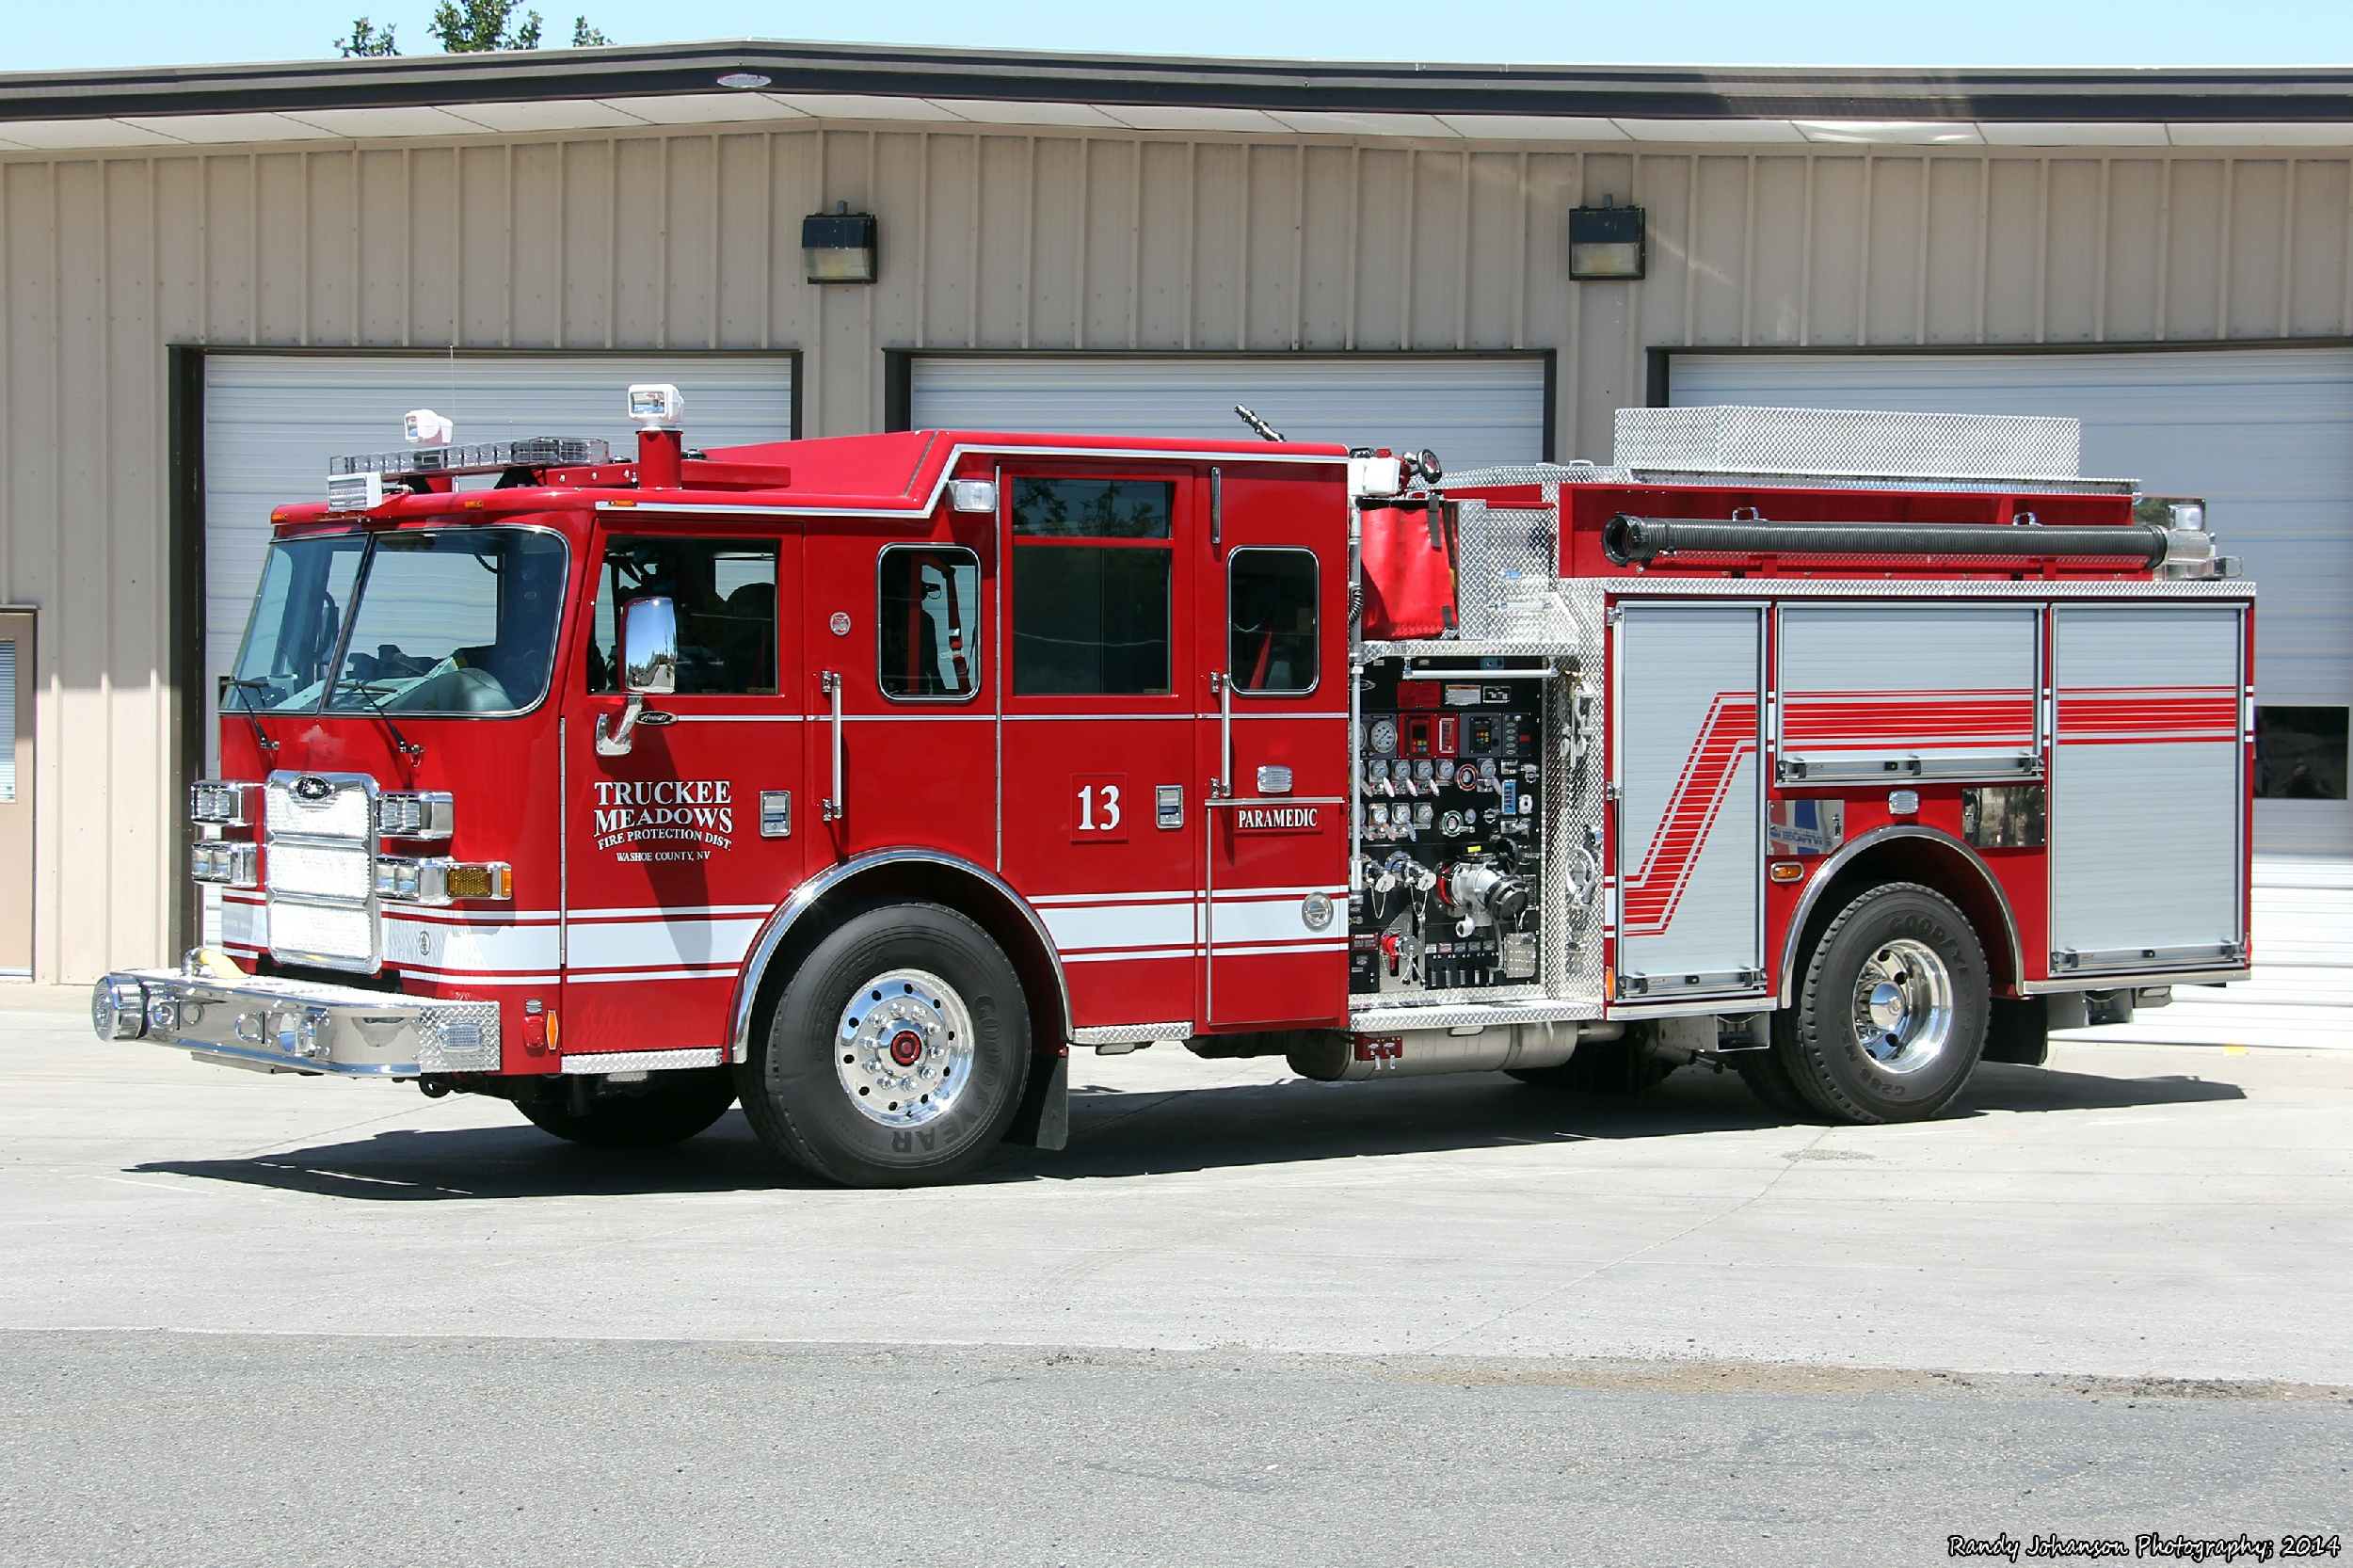 Nv Truckee Meadows Fire Department Engine Tanker